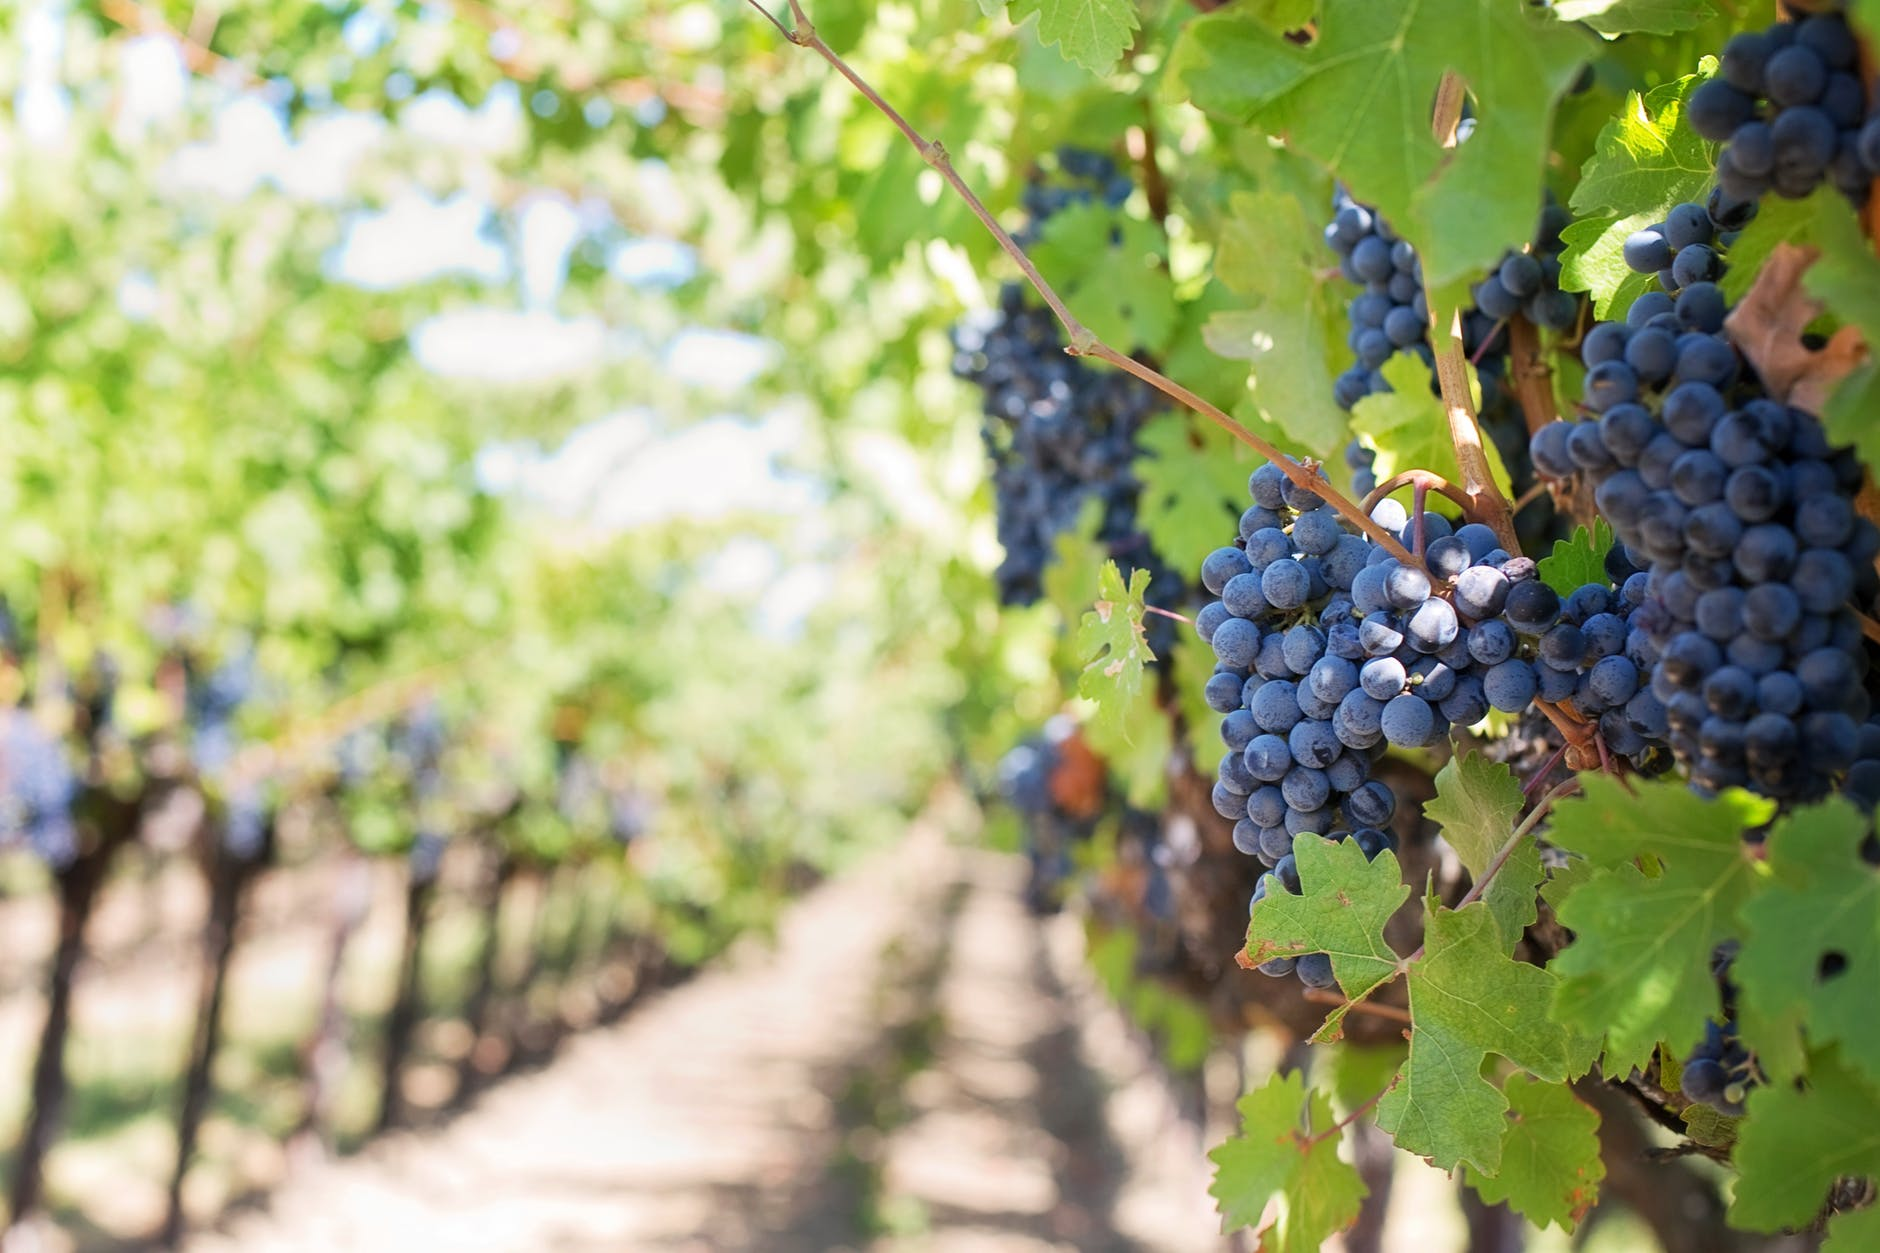 purple-grapes-vineyard-napa-valley-napa-vineyard-39351